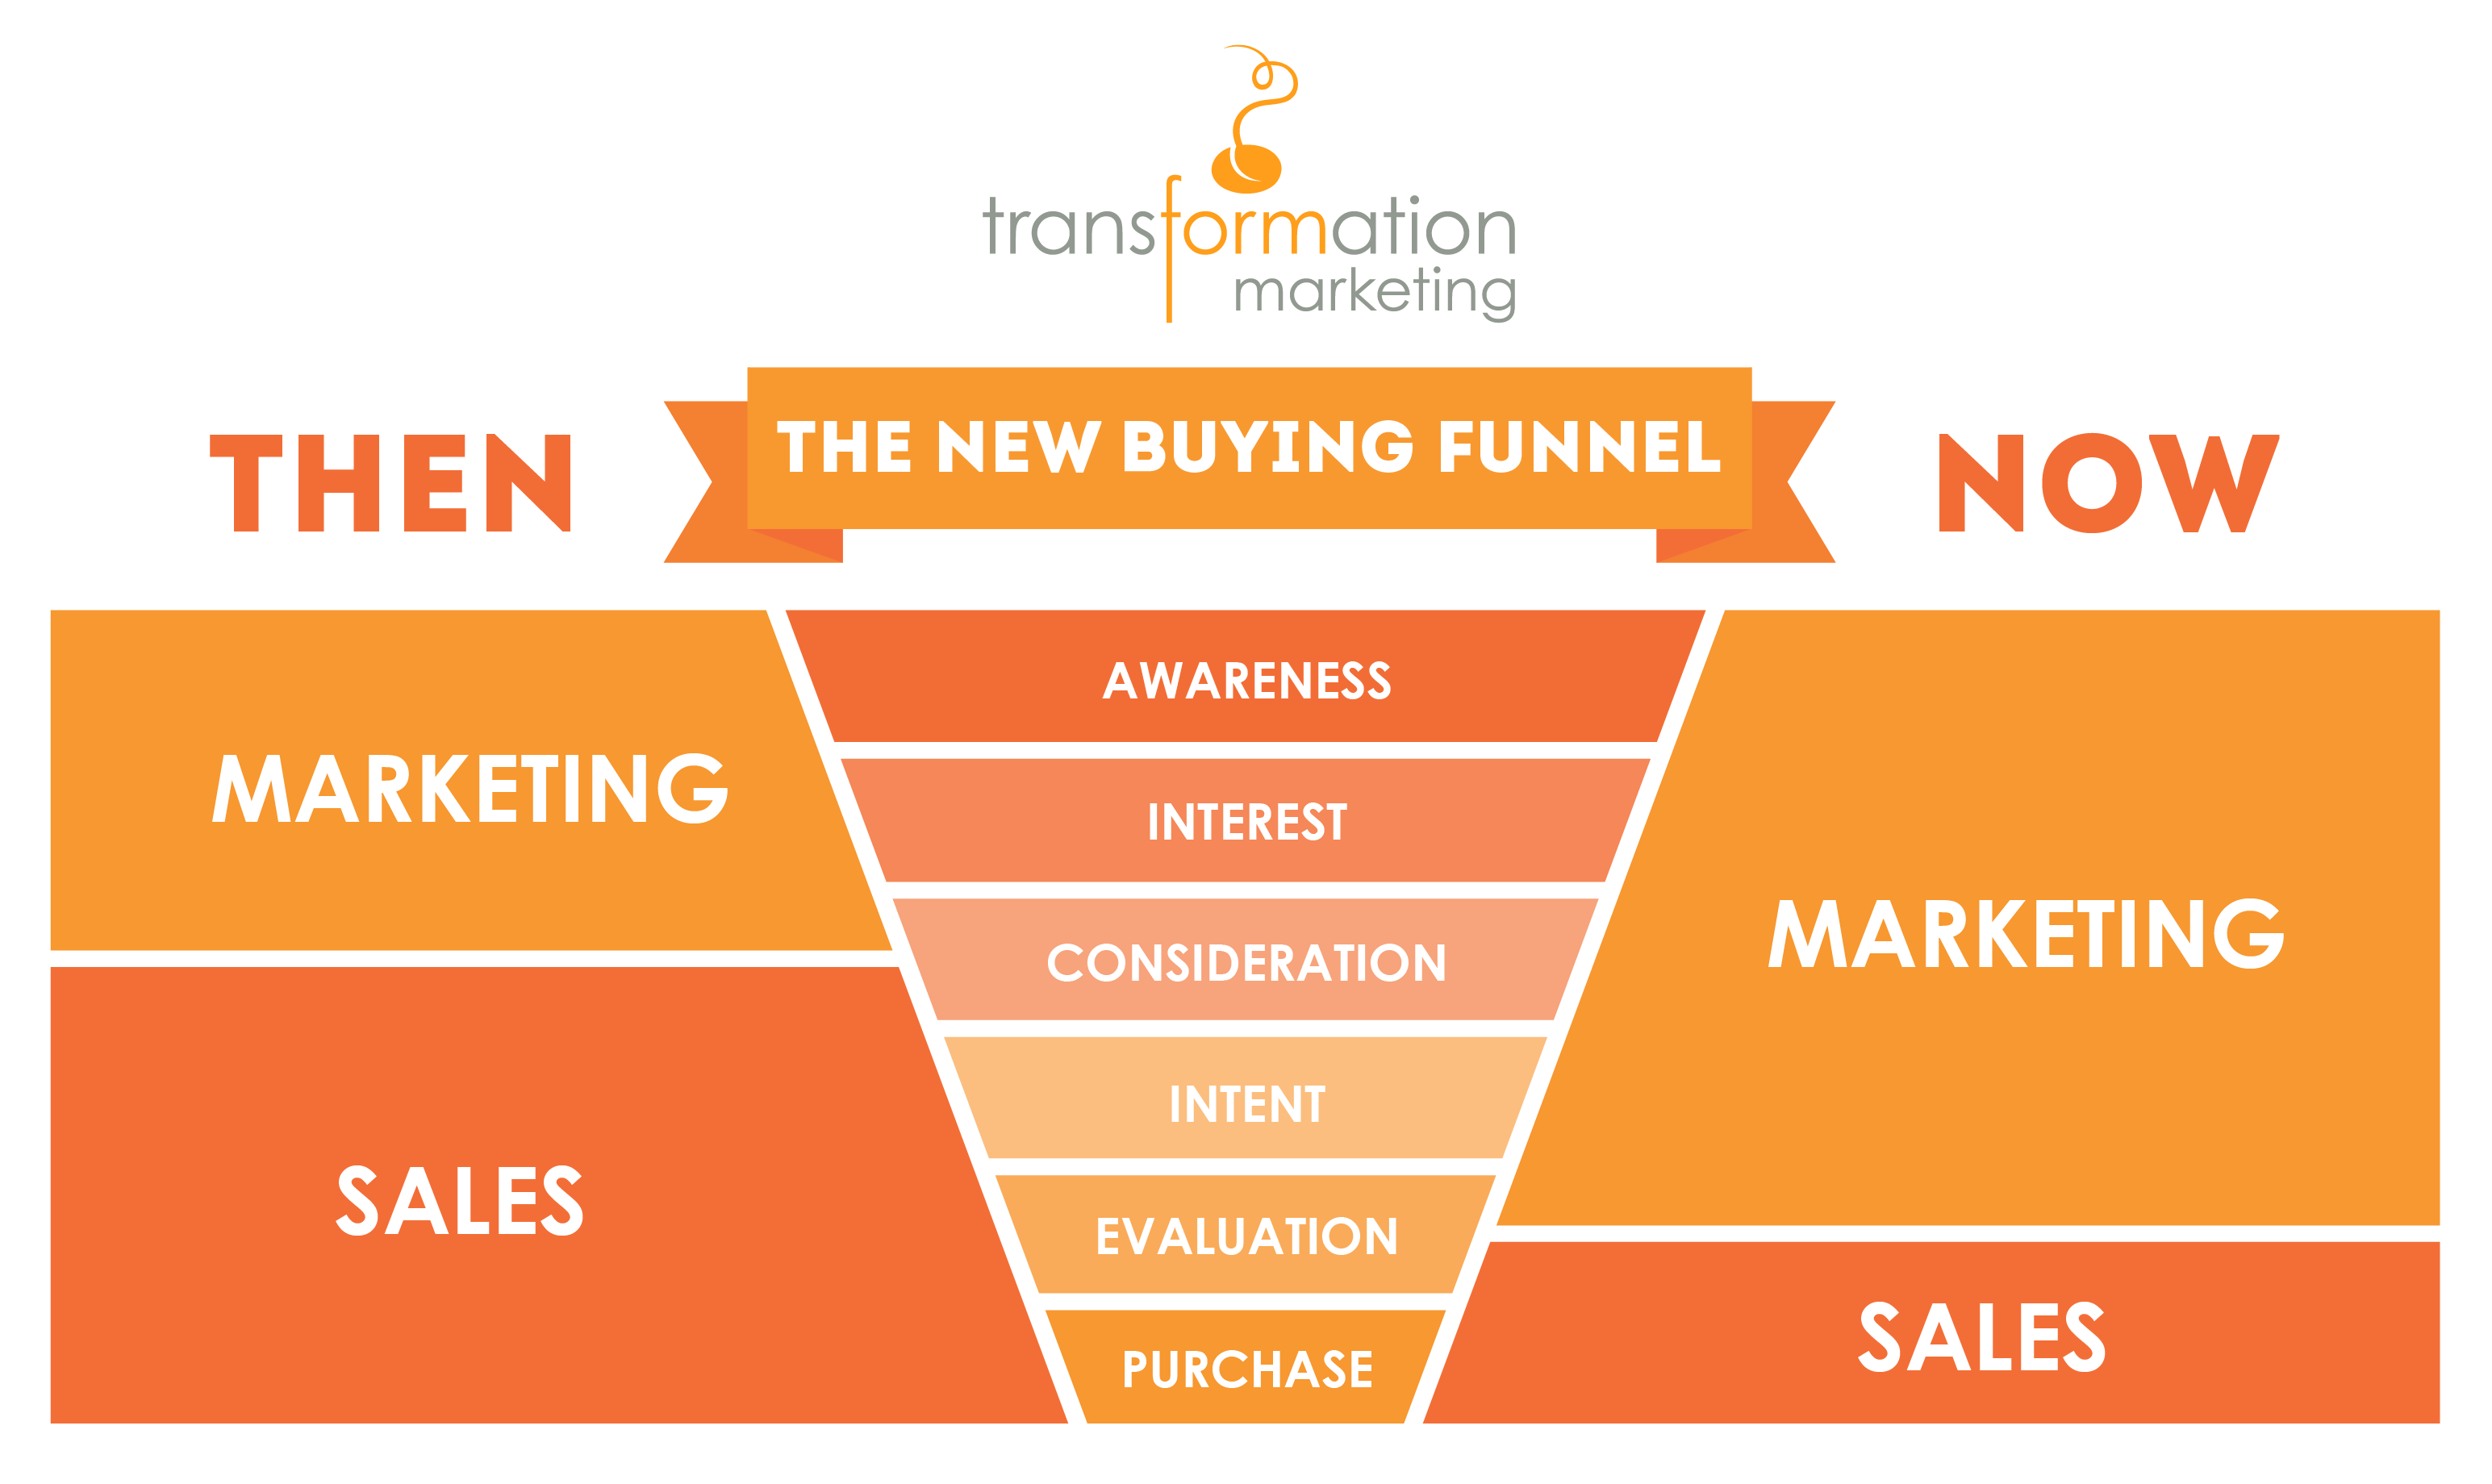 Comparing Buying Funnels